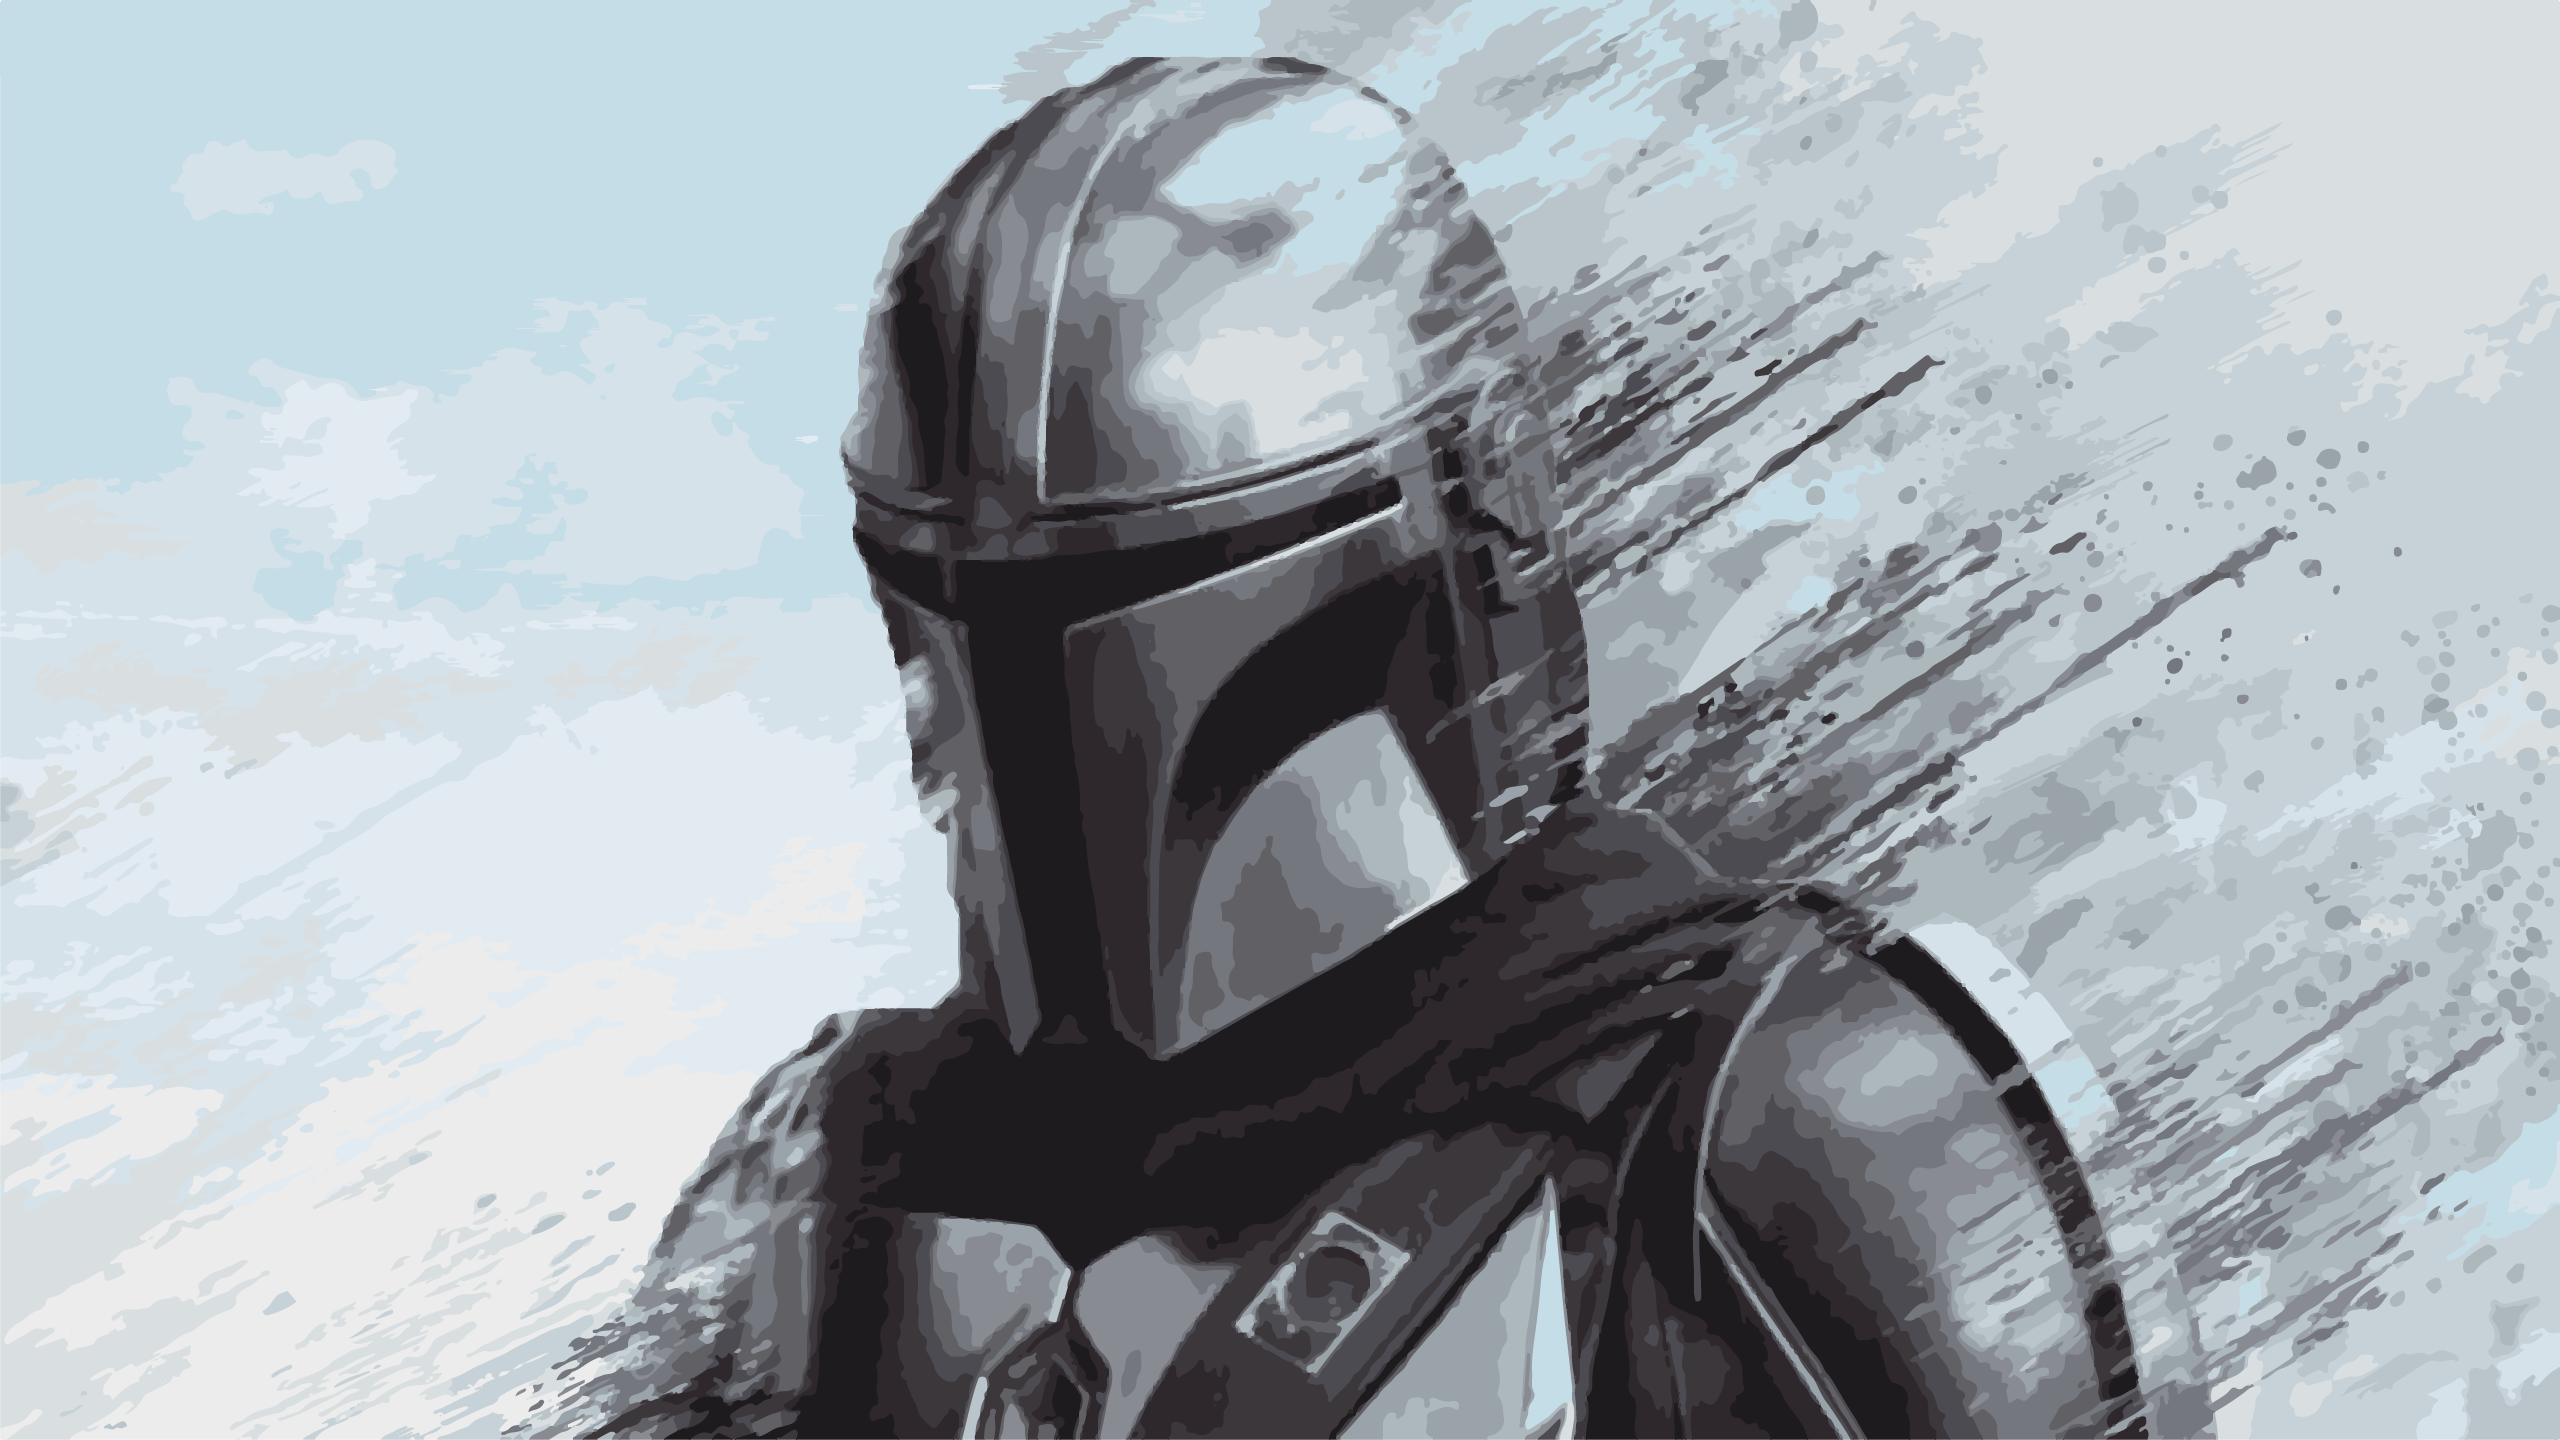 The Mandalorian 1920x1080 Cool Desktop Wallpapers Computer Wallpaper Desktop Wallpapers Computer Wallpaper Hd